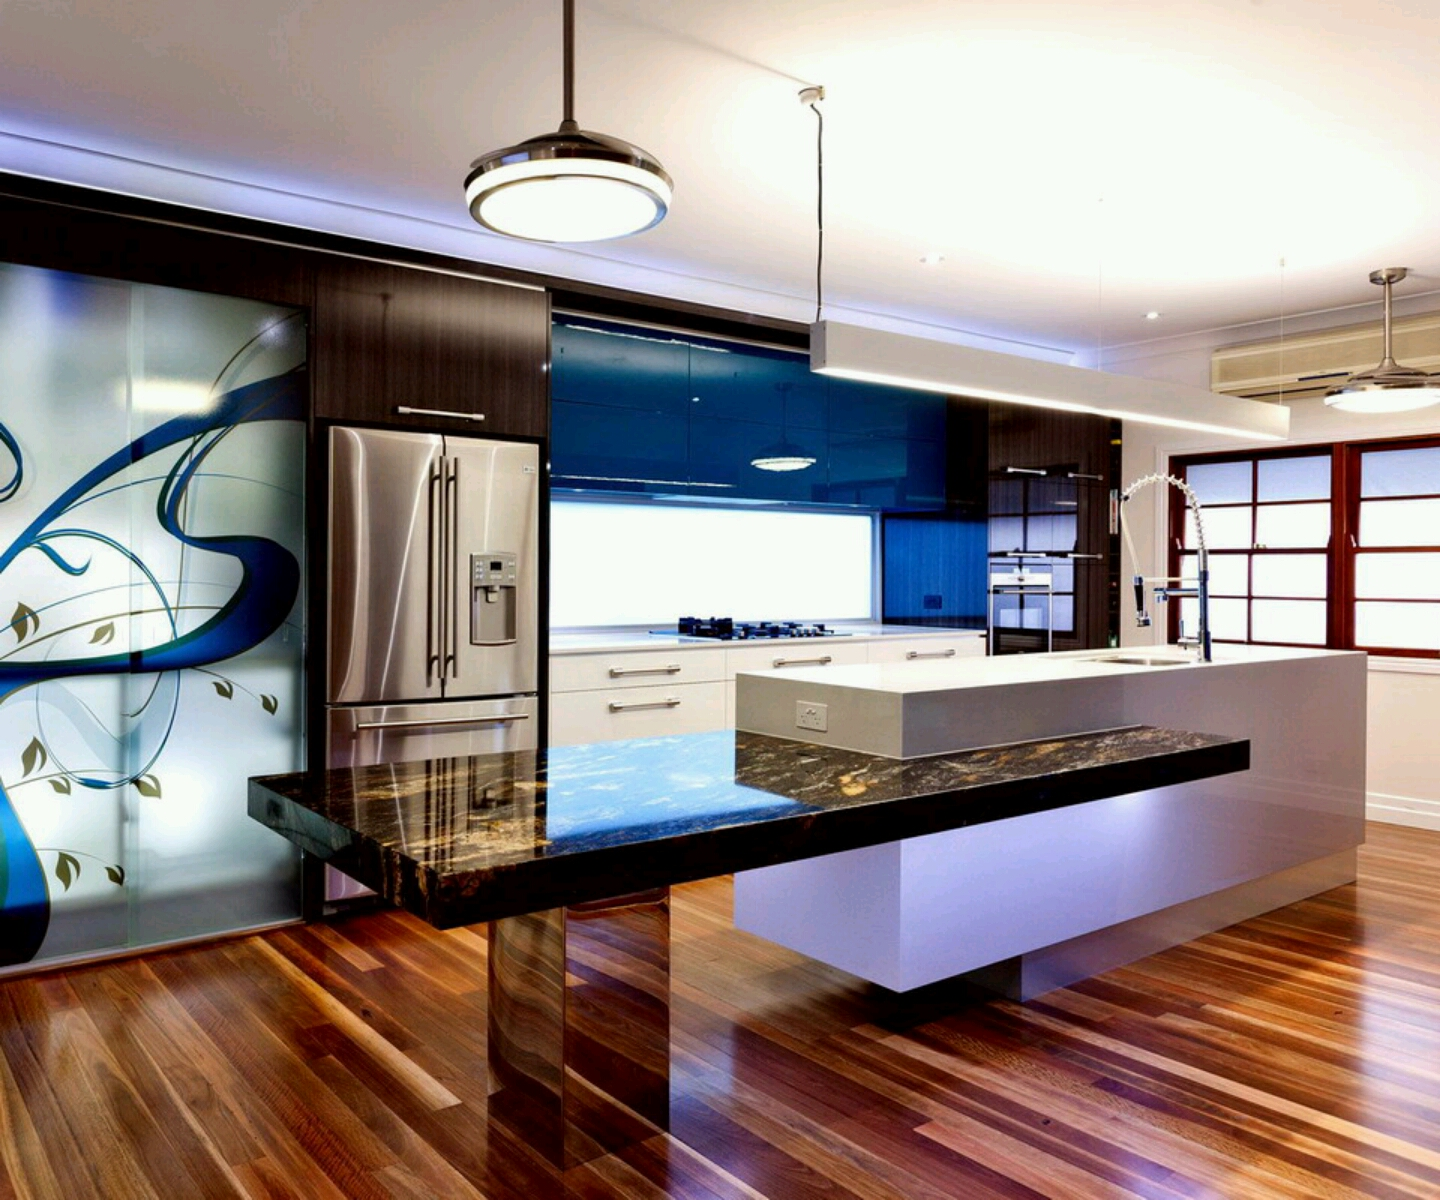 Modern kitchen designs 2013 modern world furnishing designer for Home kitchen design ideas